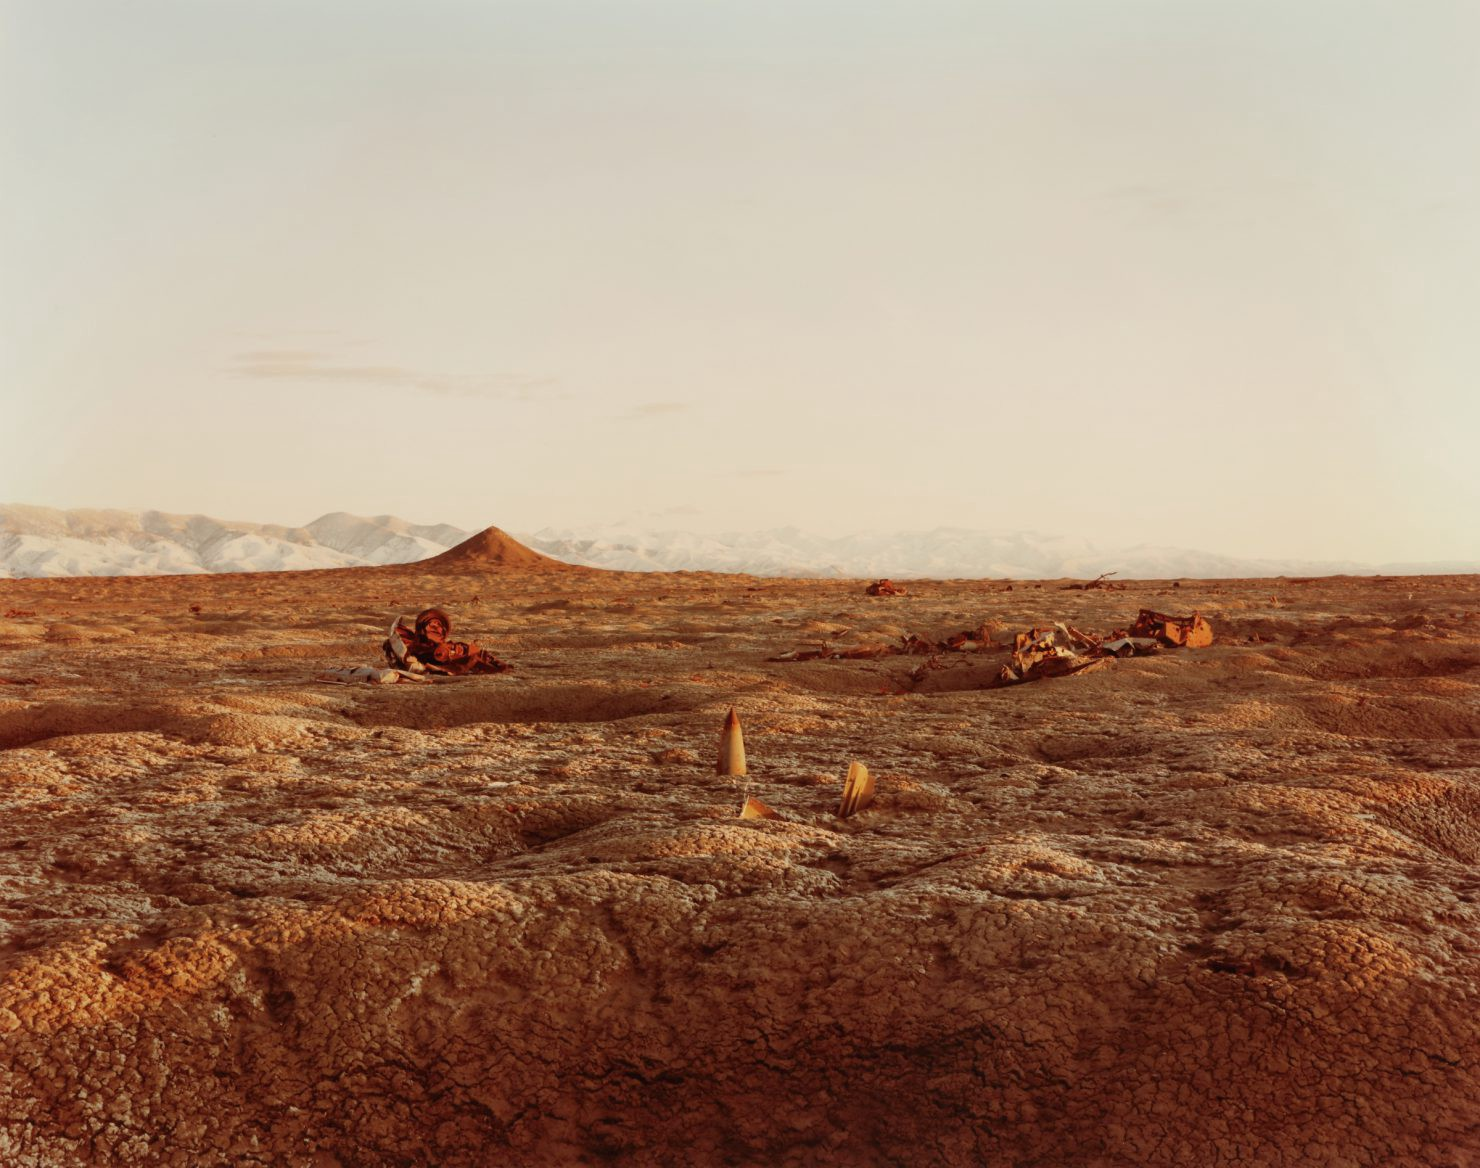 A flat, orange, barren landscape used as a bomb testing area in Nevada is peppered with destroyed vehicle and bomb parts.